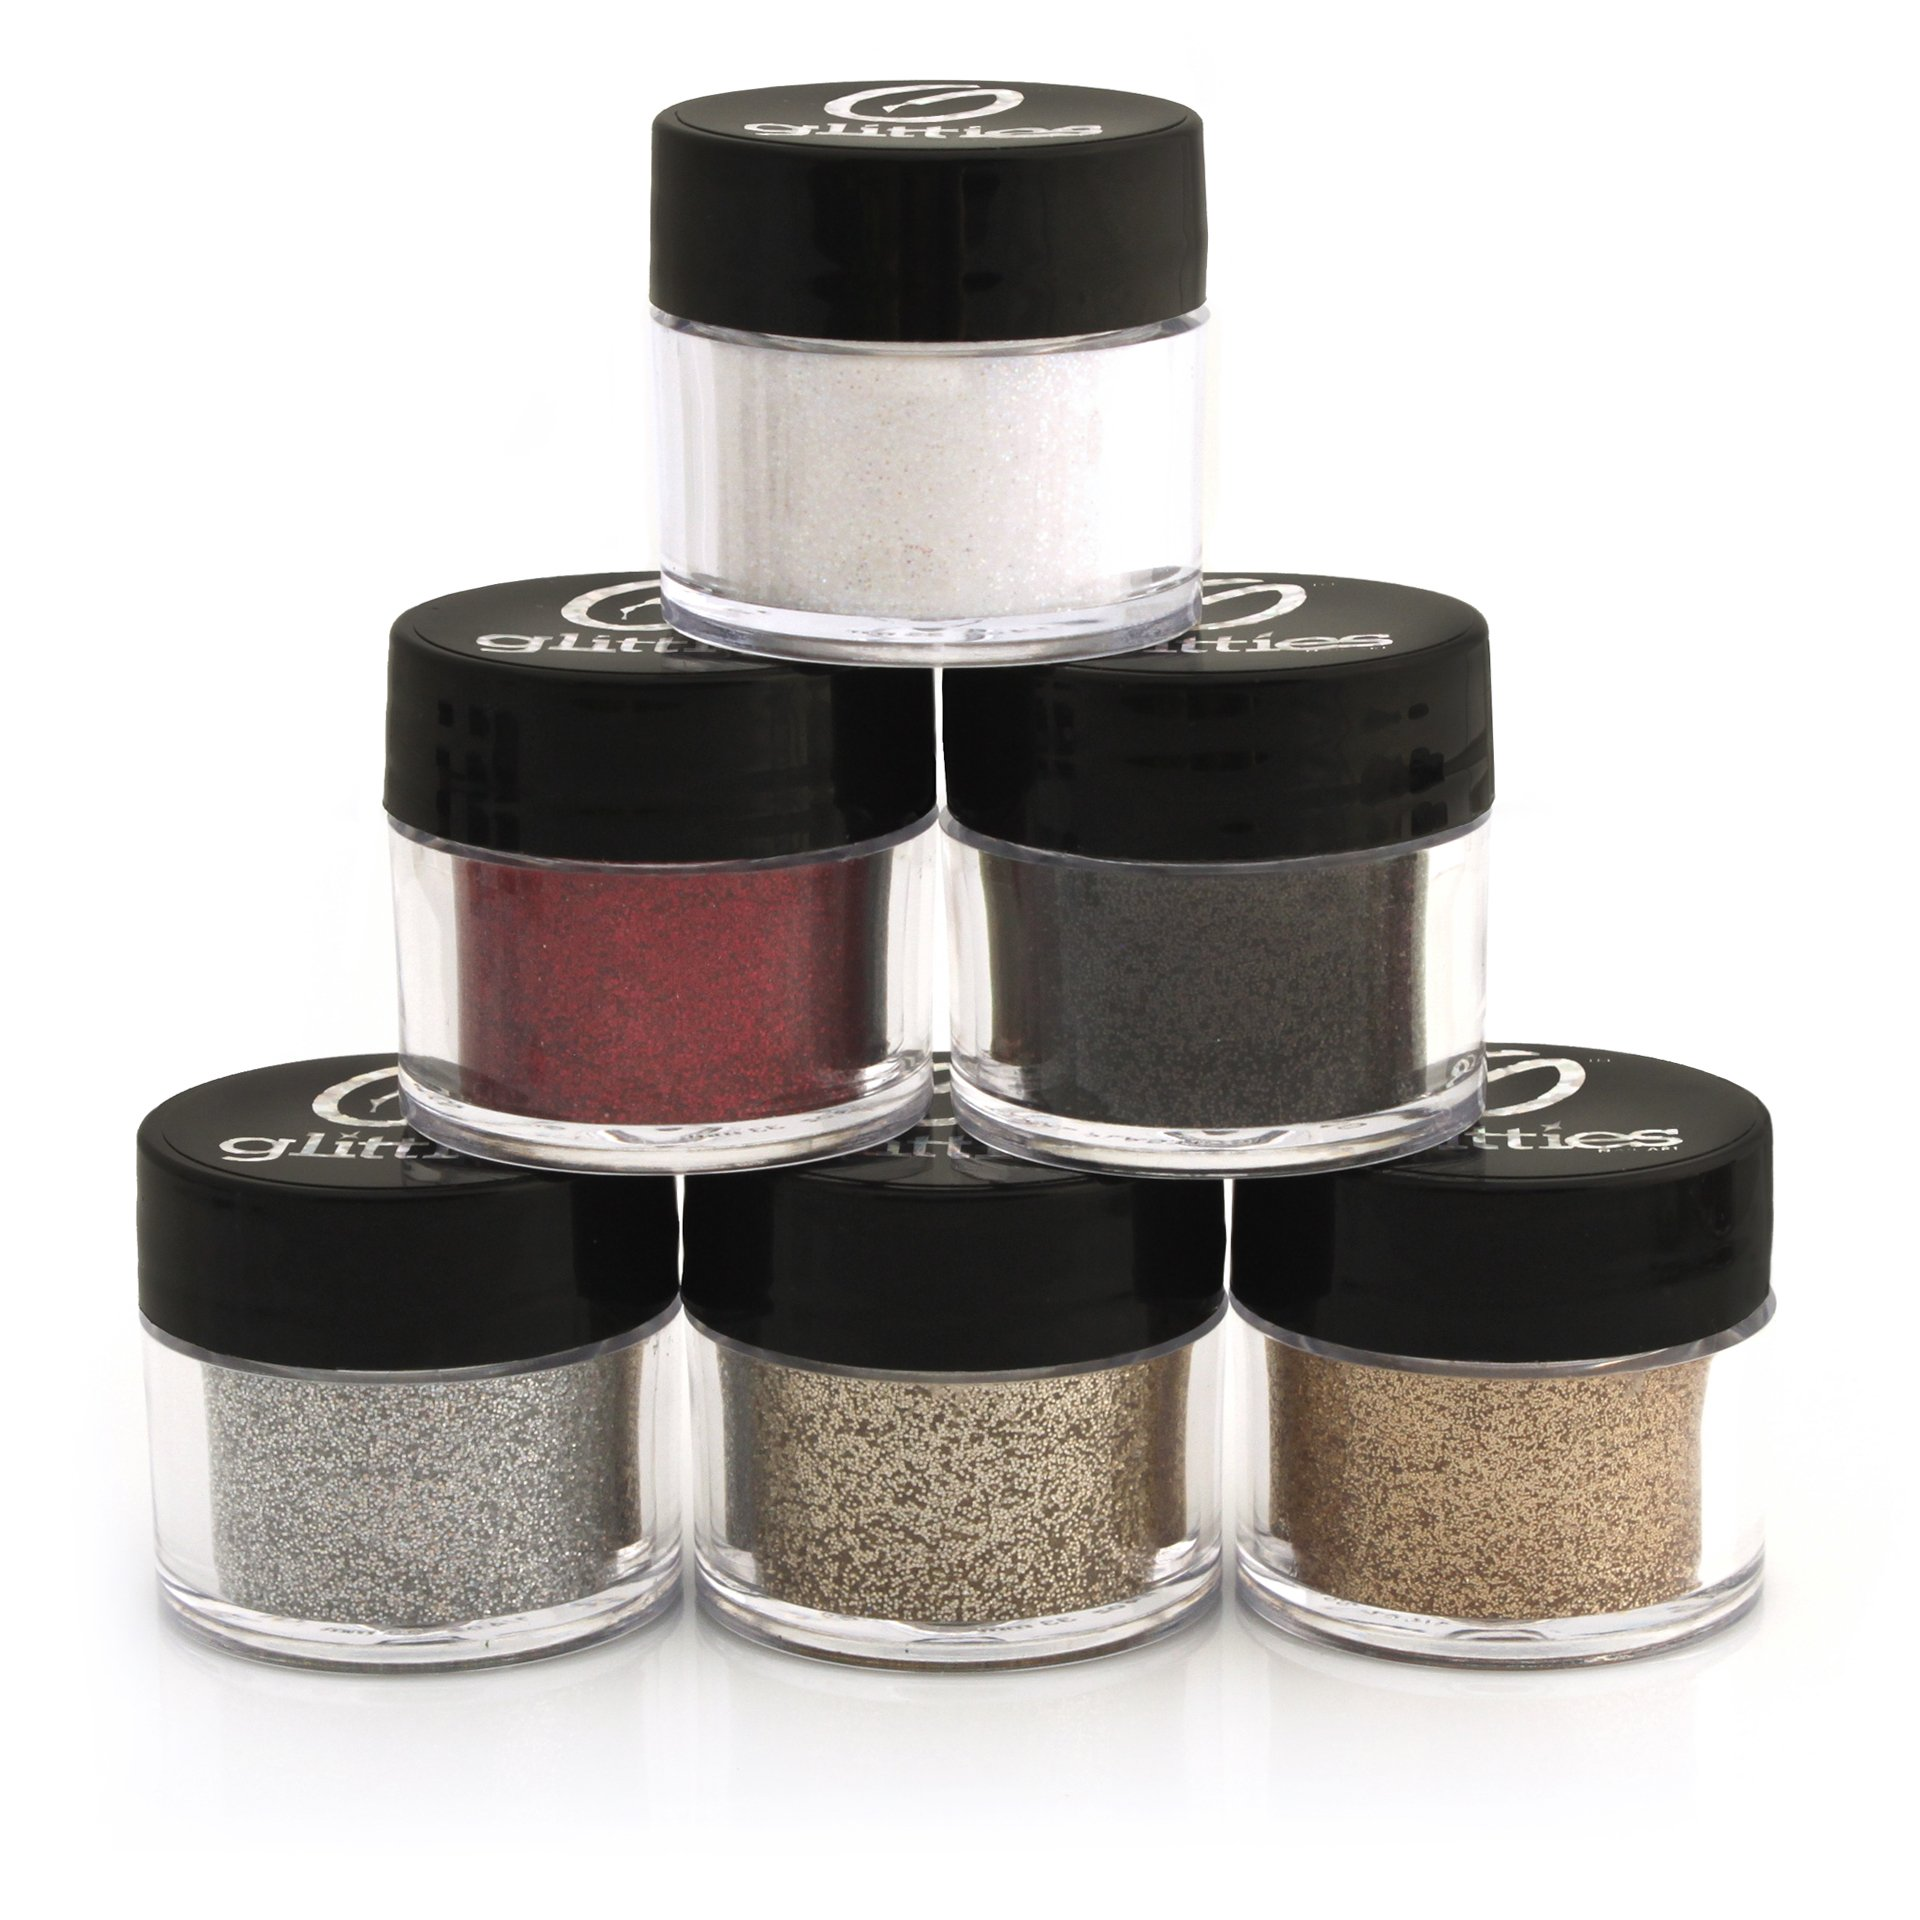 Neutral Cosmetic Glitter Powder Kit (6 PK)- Safe for eyeshadow, make up, body and nails. by Glitties Nail Art (Image #1)